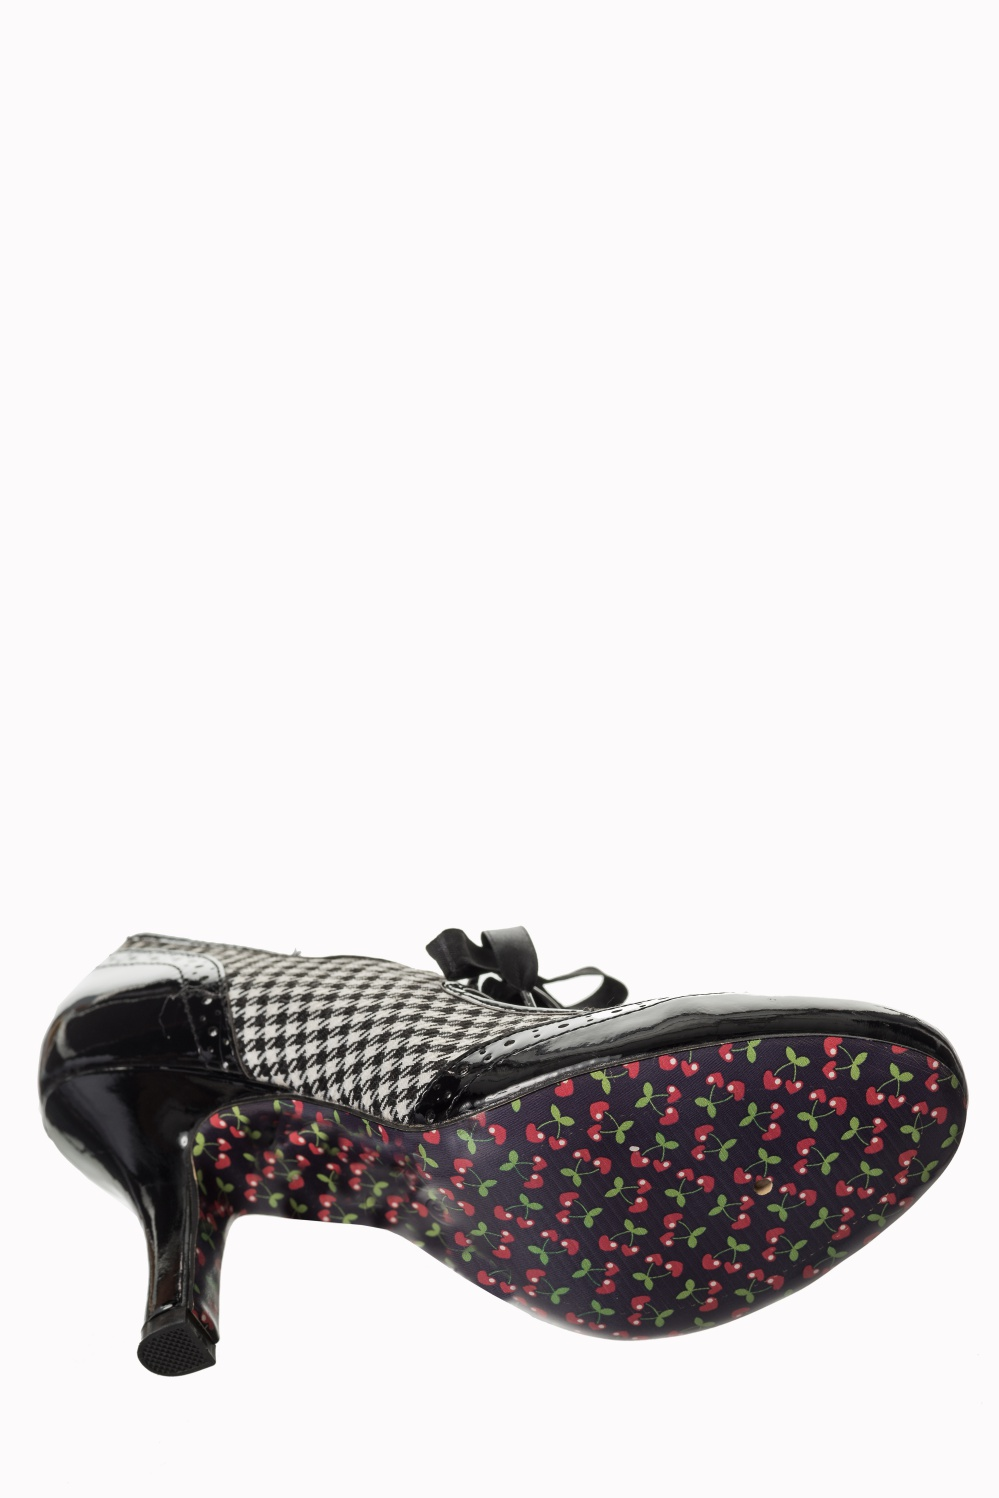 Dancing Days Houndstooth 50s Shoes